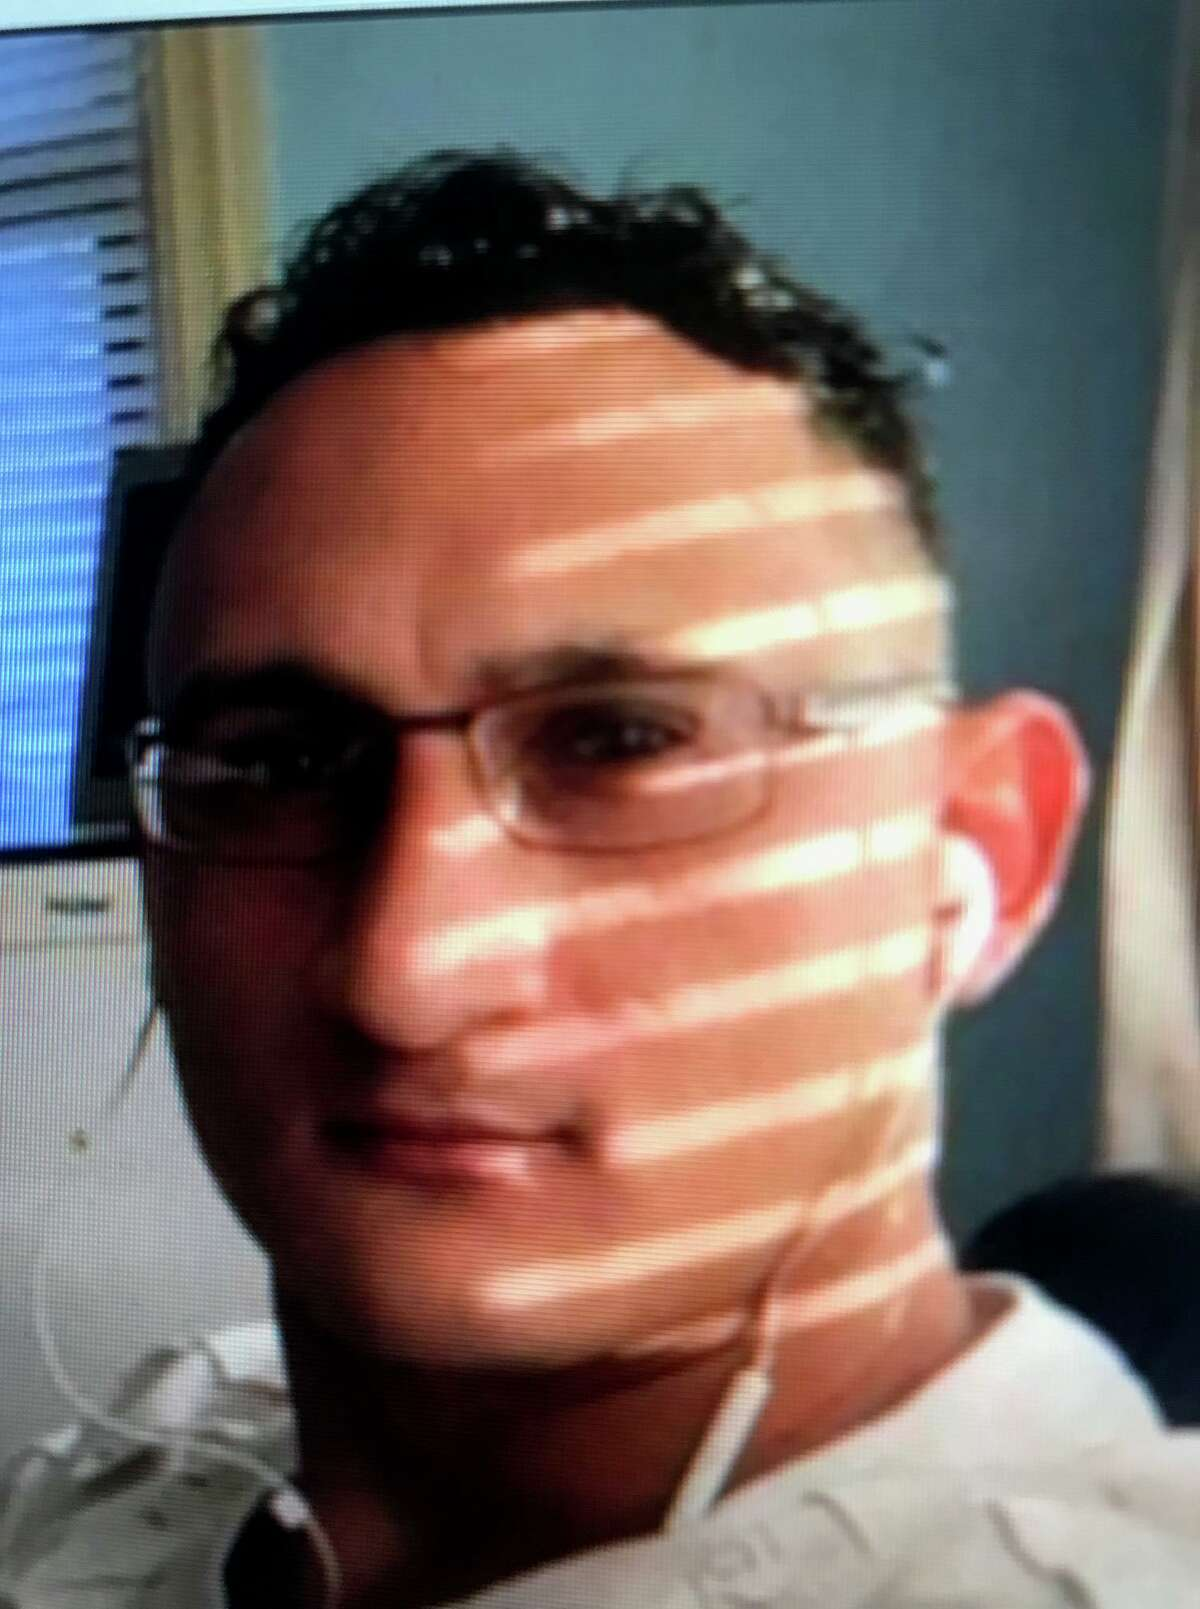 Stamford police say Samuel Delfiro Zapata-Herrera, 29, is wanted for questioning in a Sunday night homicide.